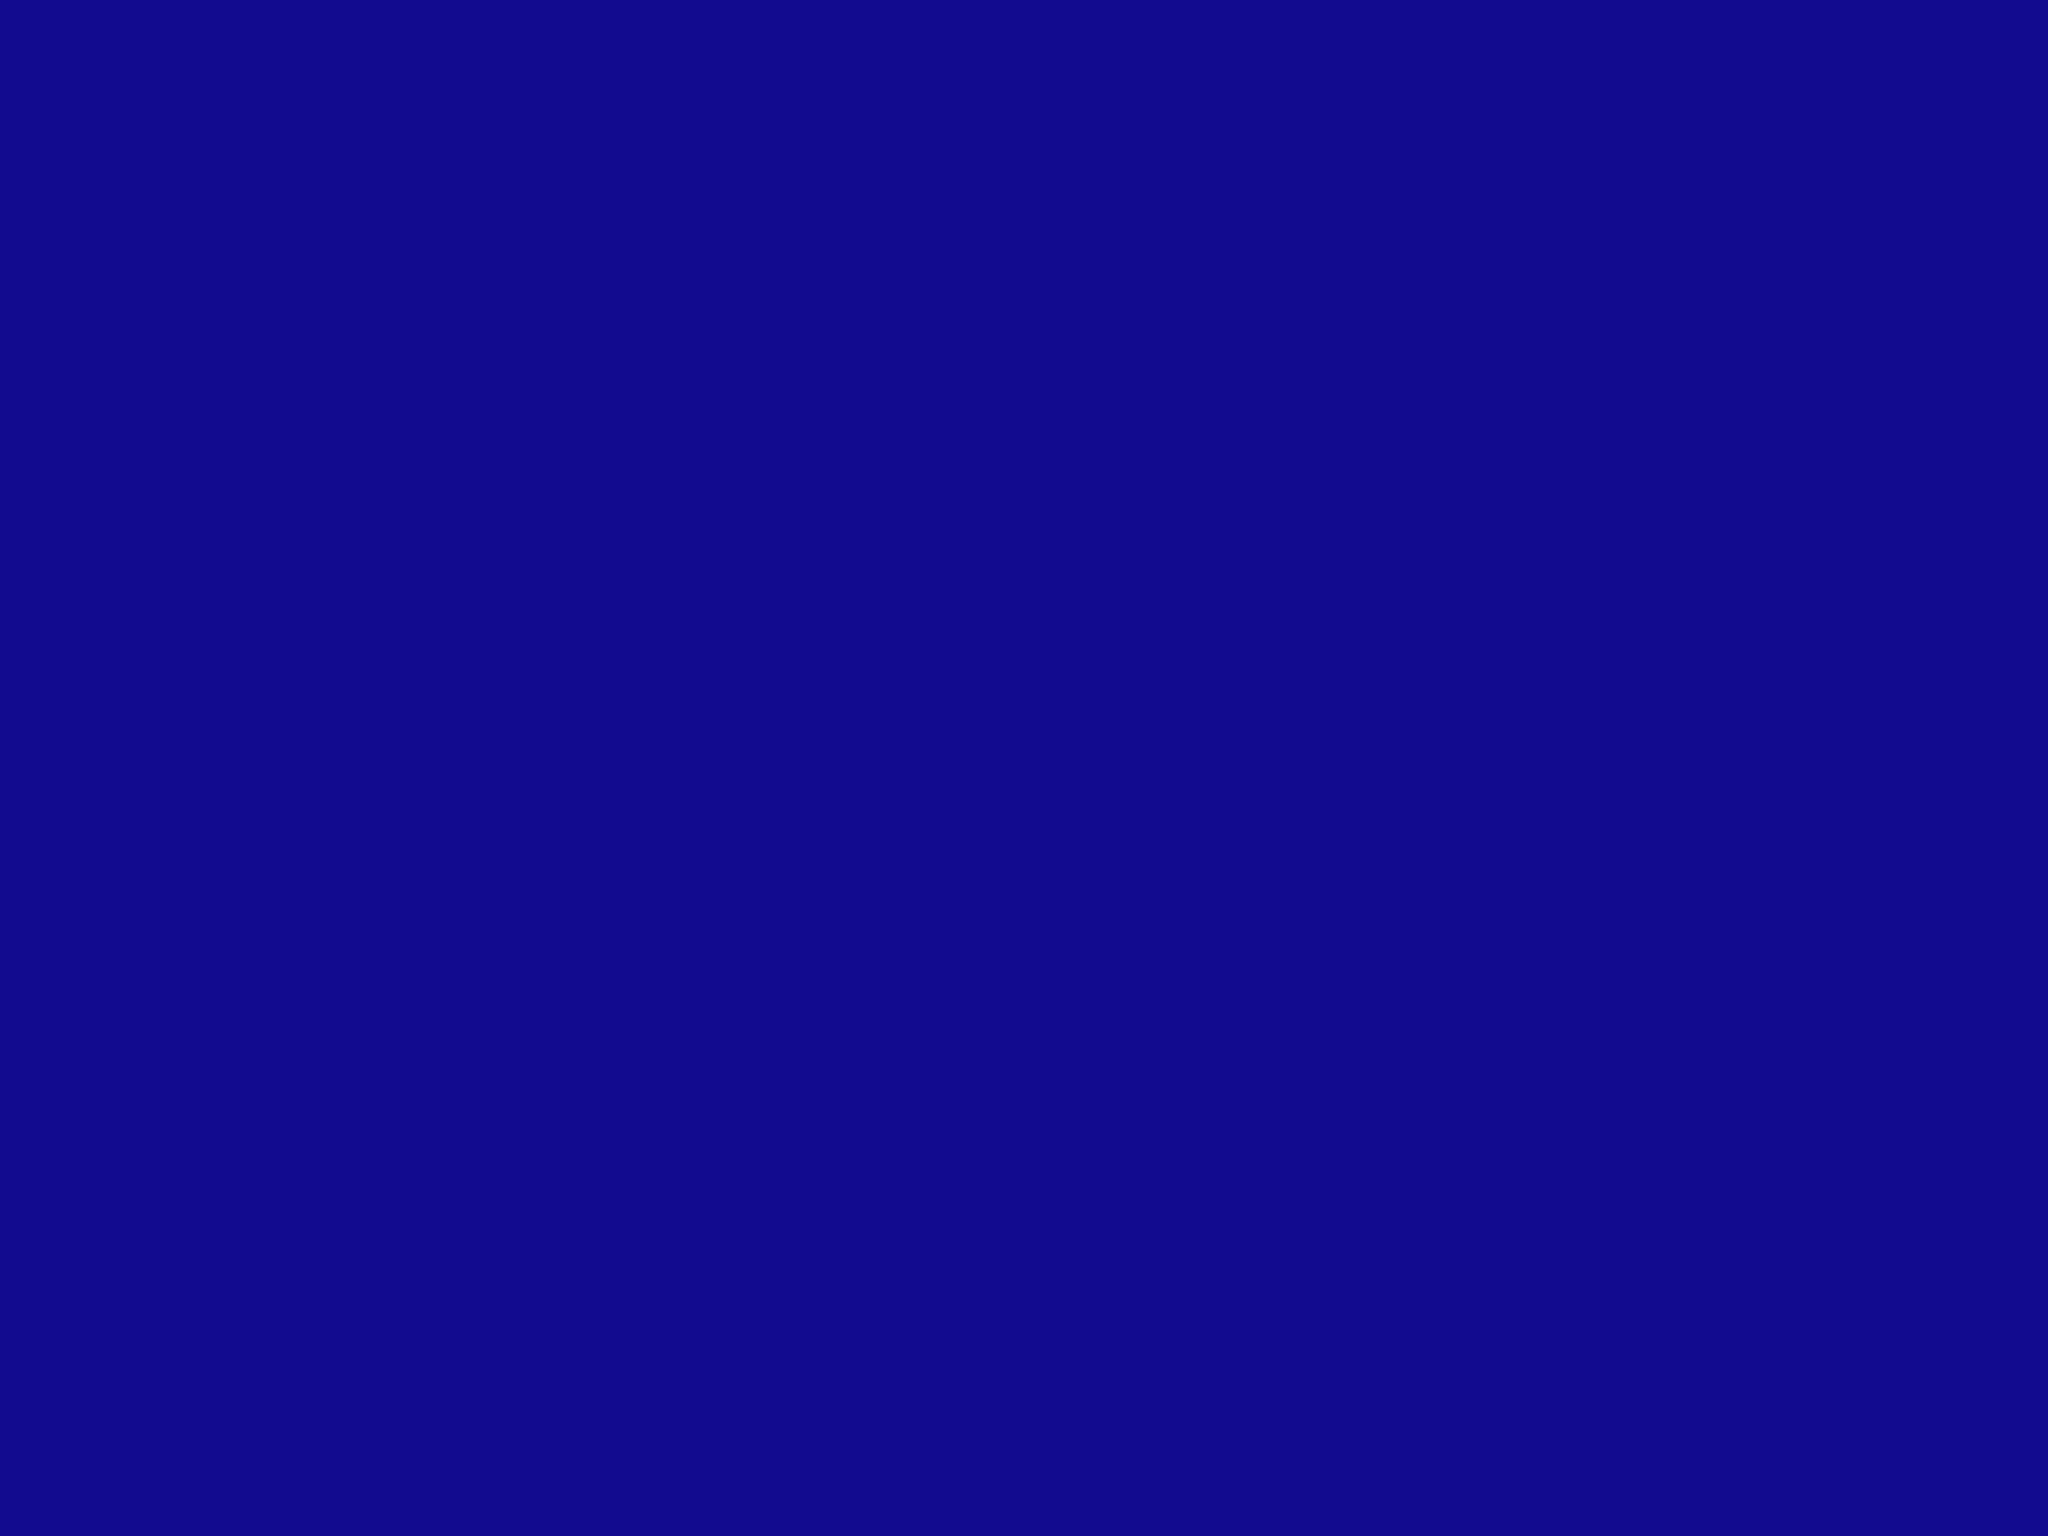 2048x1536 Ultramarine Solid Color Background